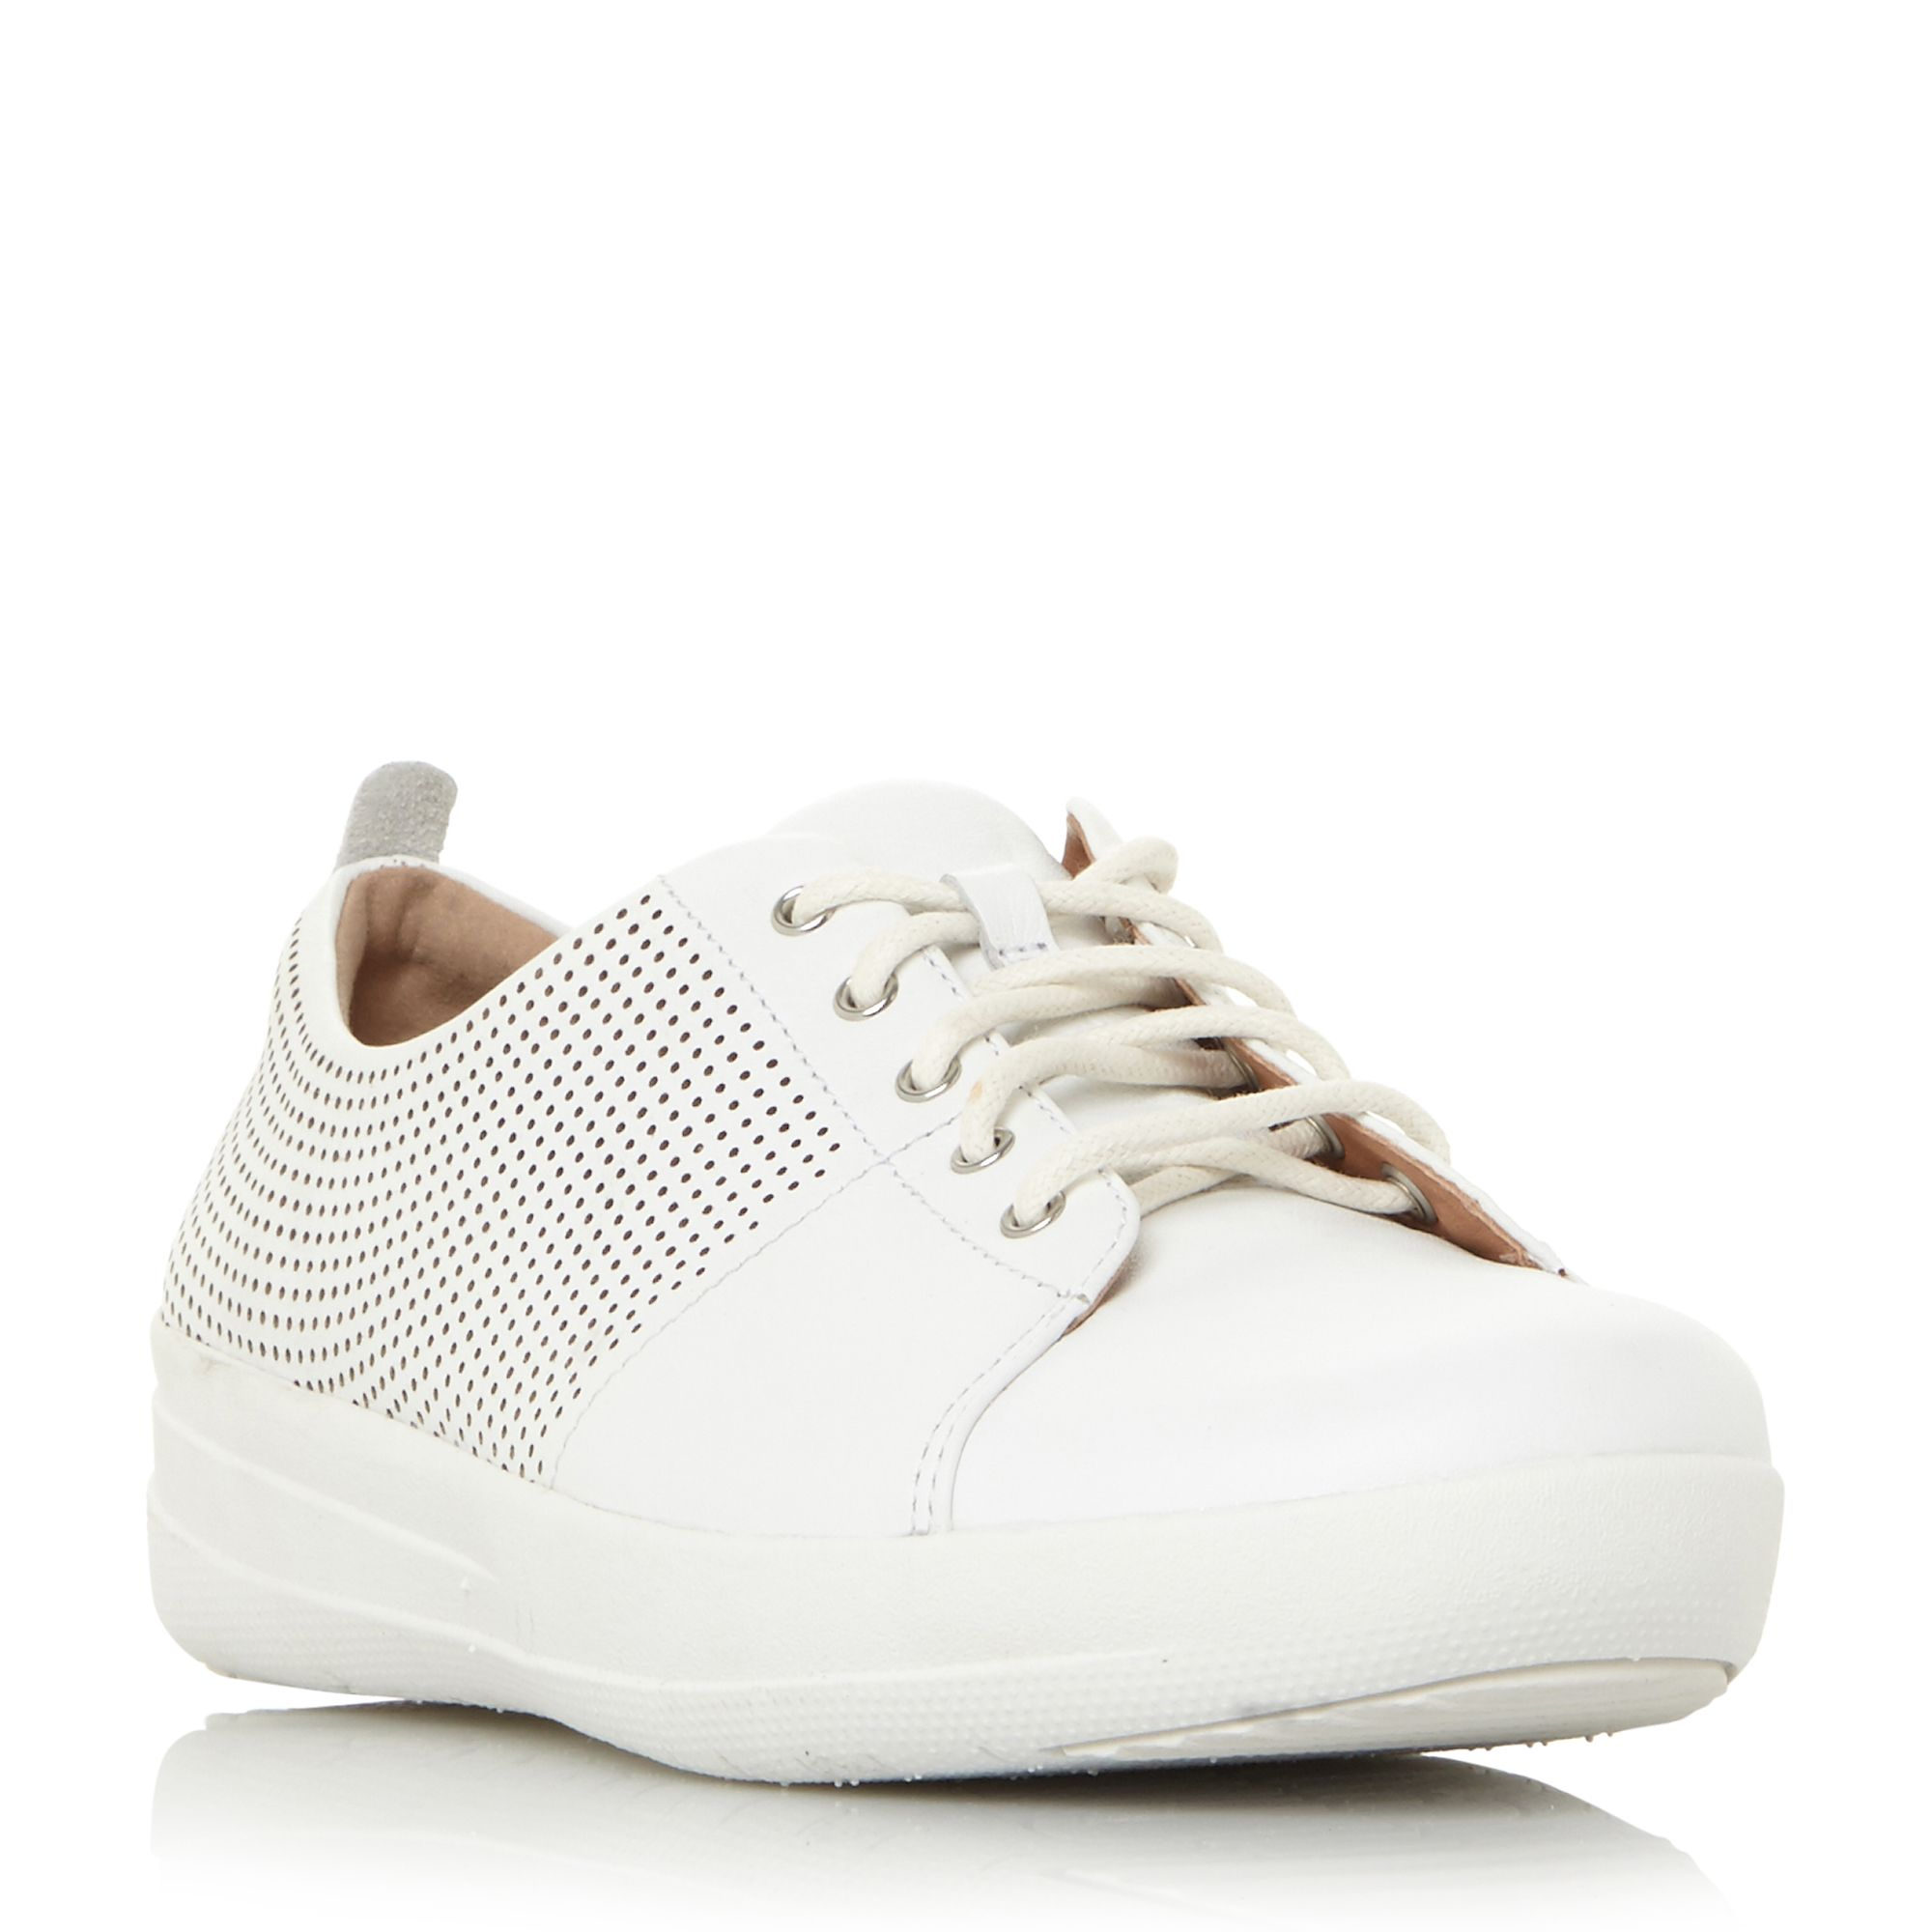 FitFlop F-Sporty Ii Lace Up Trainers, White